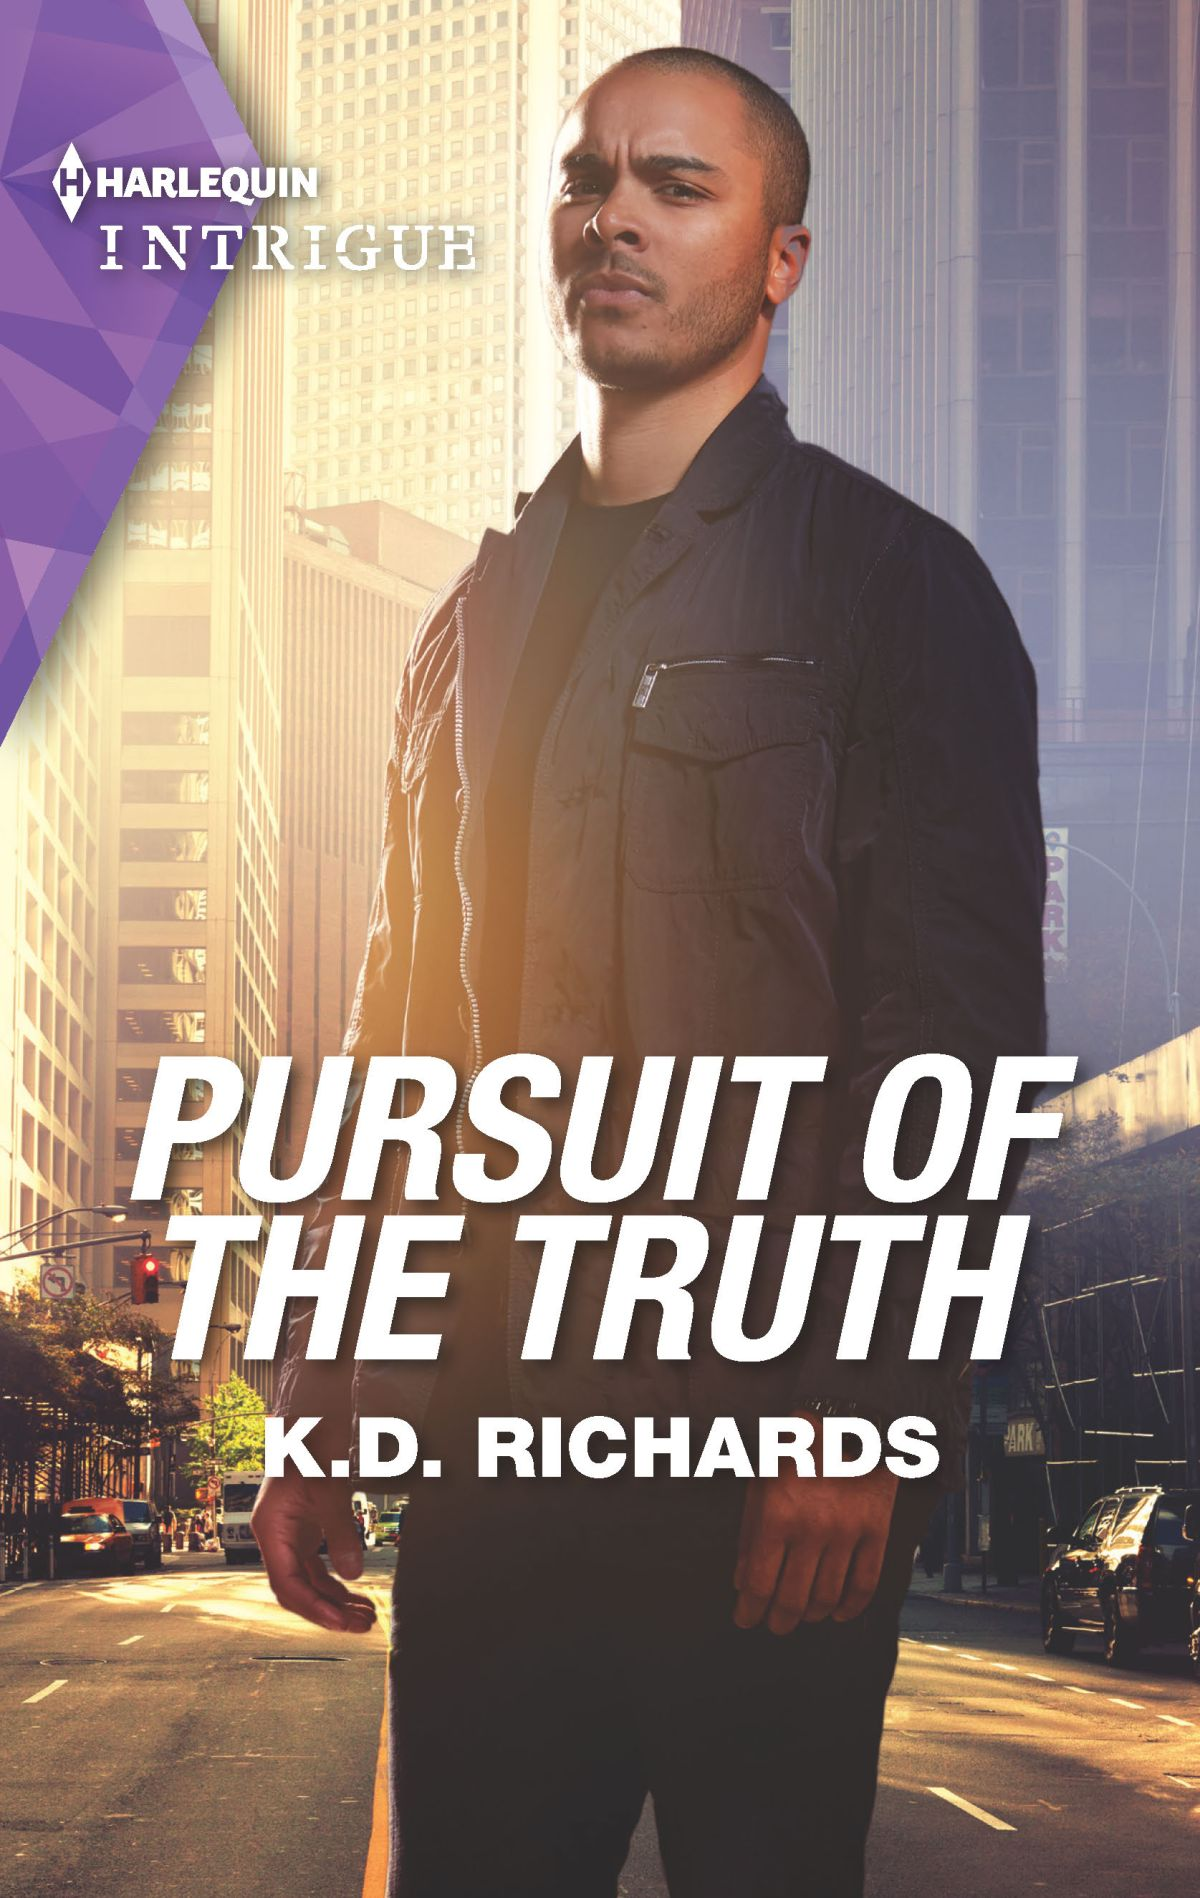 Guest Post: K.D. Richards – PURSUIT OF THE TRUTH